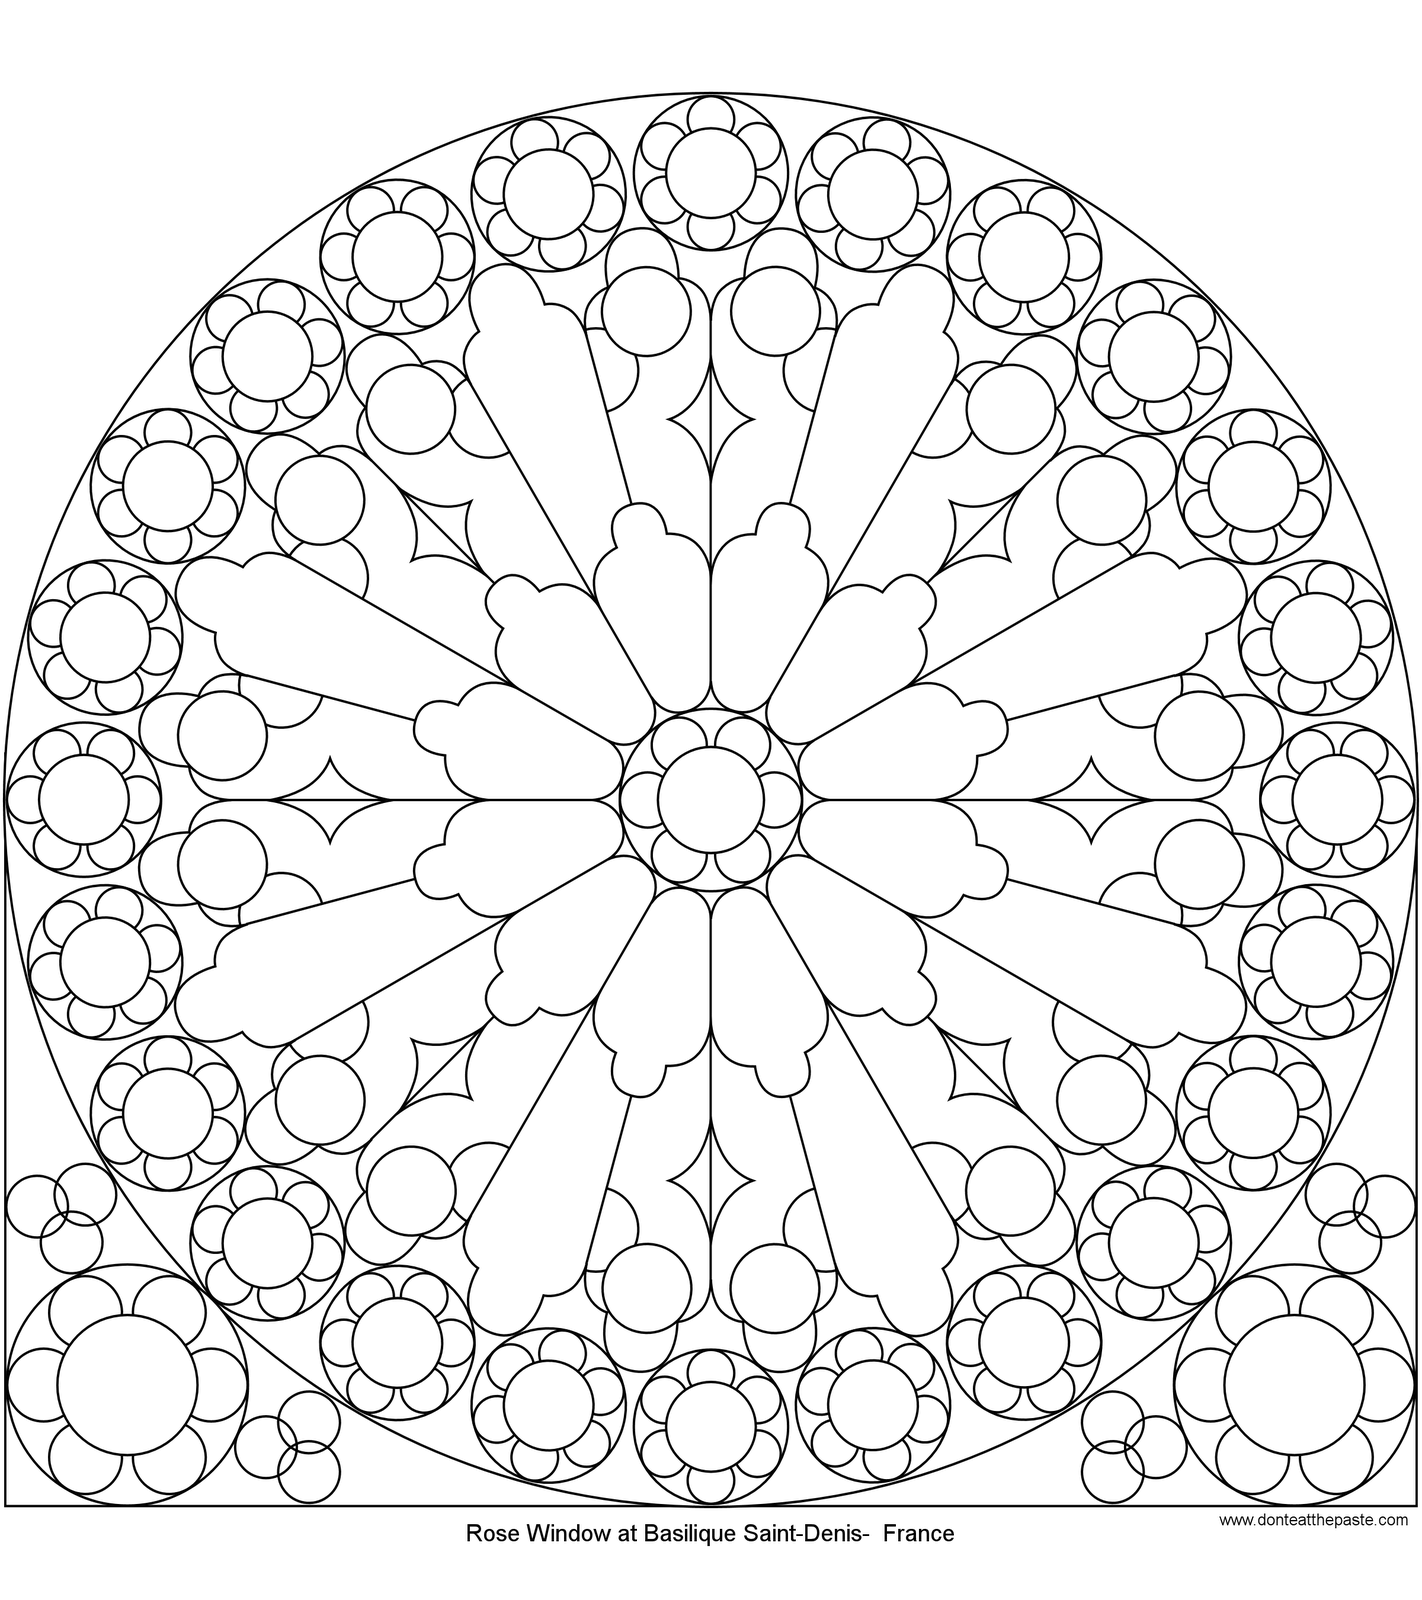 Rose Mandala Picture To Color Stained Glass Window Mandala Coloring Pages Pattern Mandala